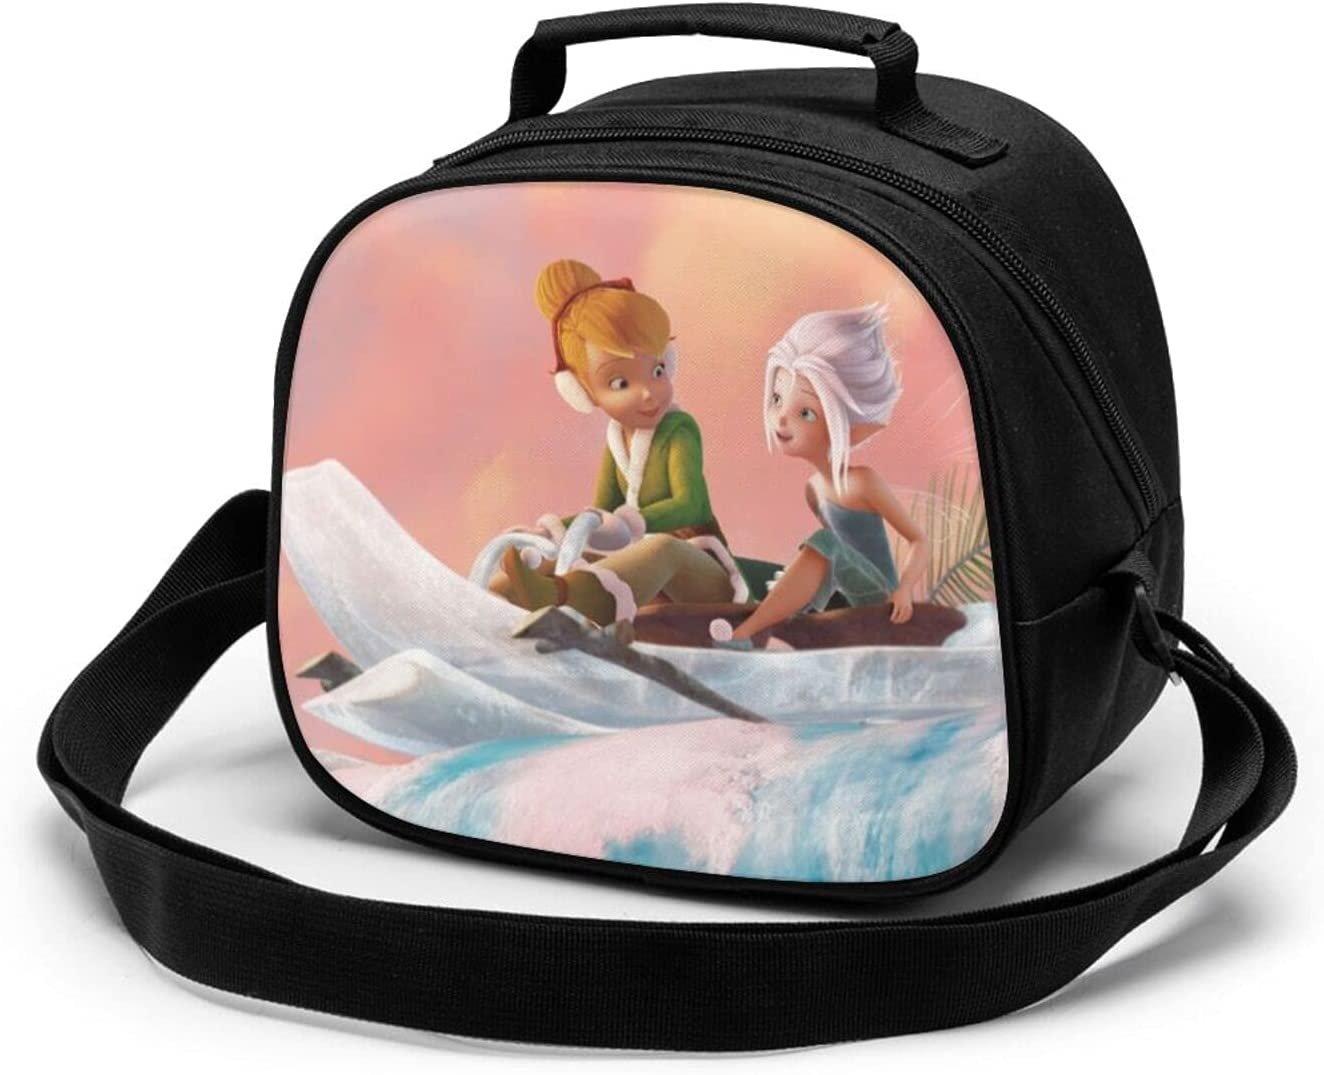 Tinker Bell Secret of The Wings Round Children's Meal Bag Reusable Food Storage,Insulated Bag,Fresh-Keeping Bag,Tote Bag,Water Resistant Thermal Lunch Bags